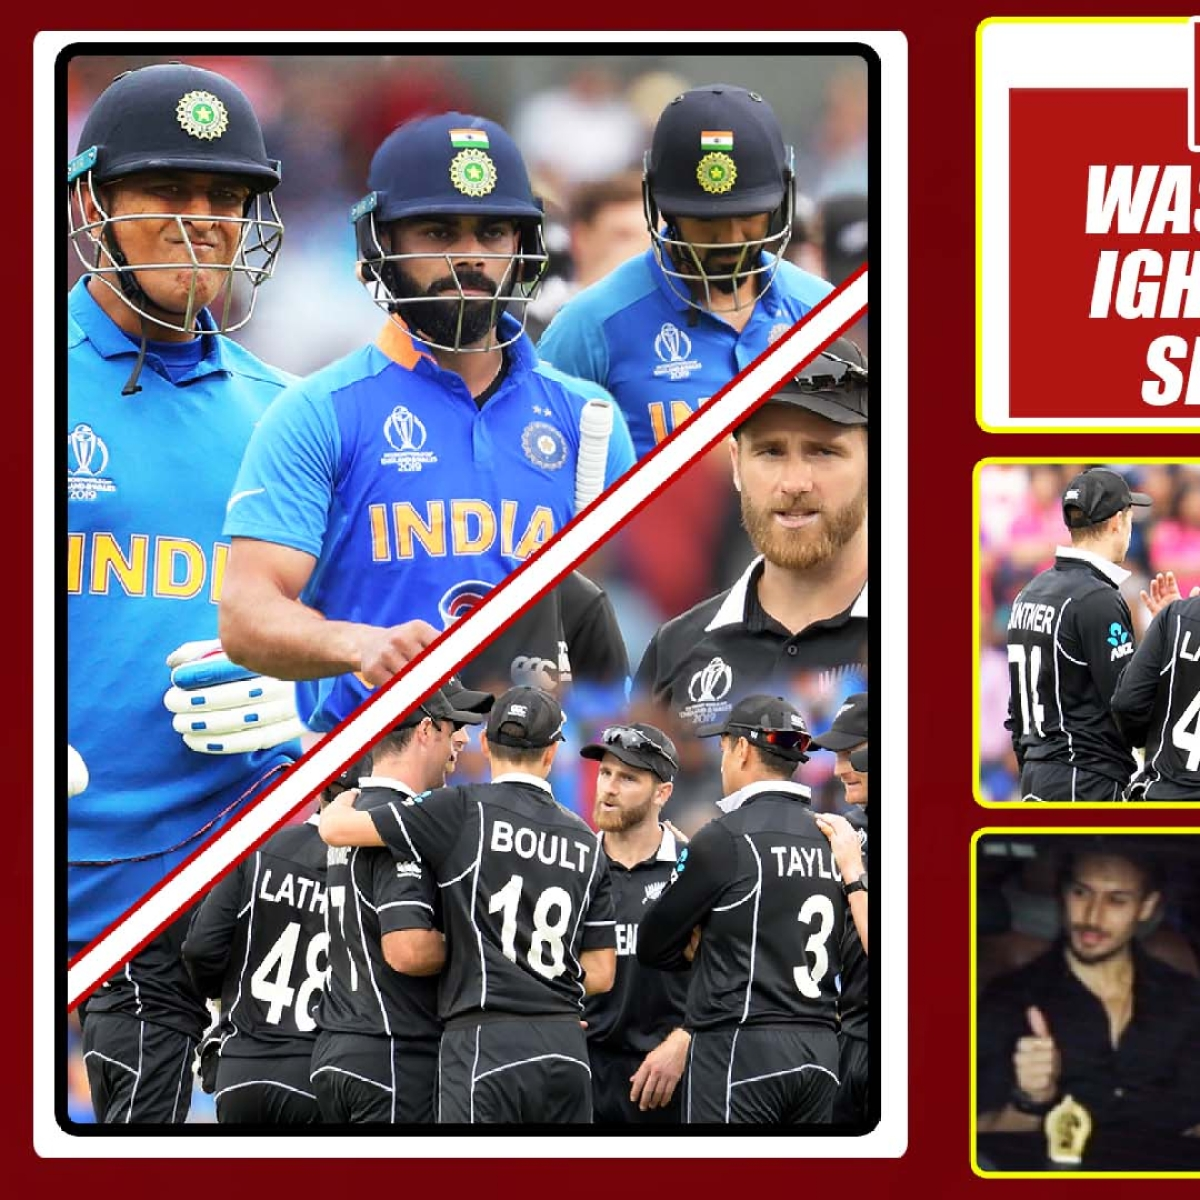 Top Sories Of The Day: Was Dhoni's Run Out The Right Decision?,IND vs NZ   Semi Final Highlights